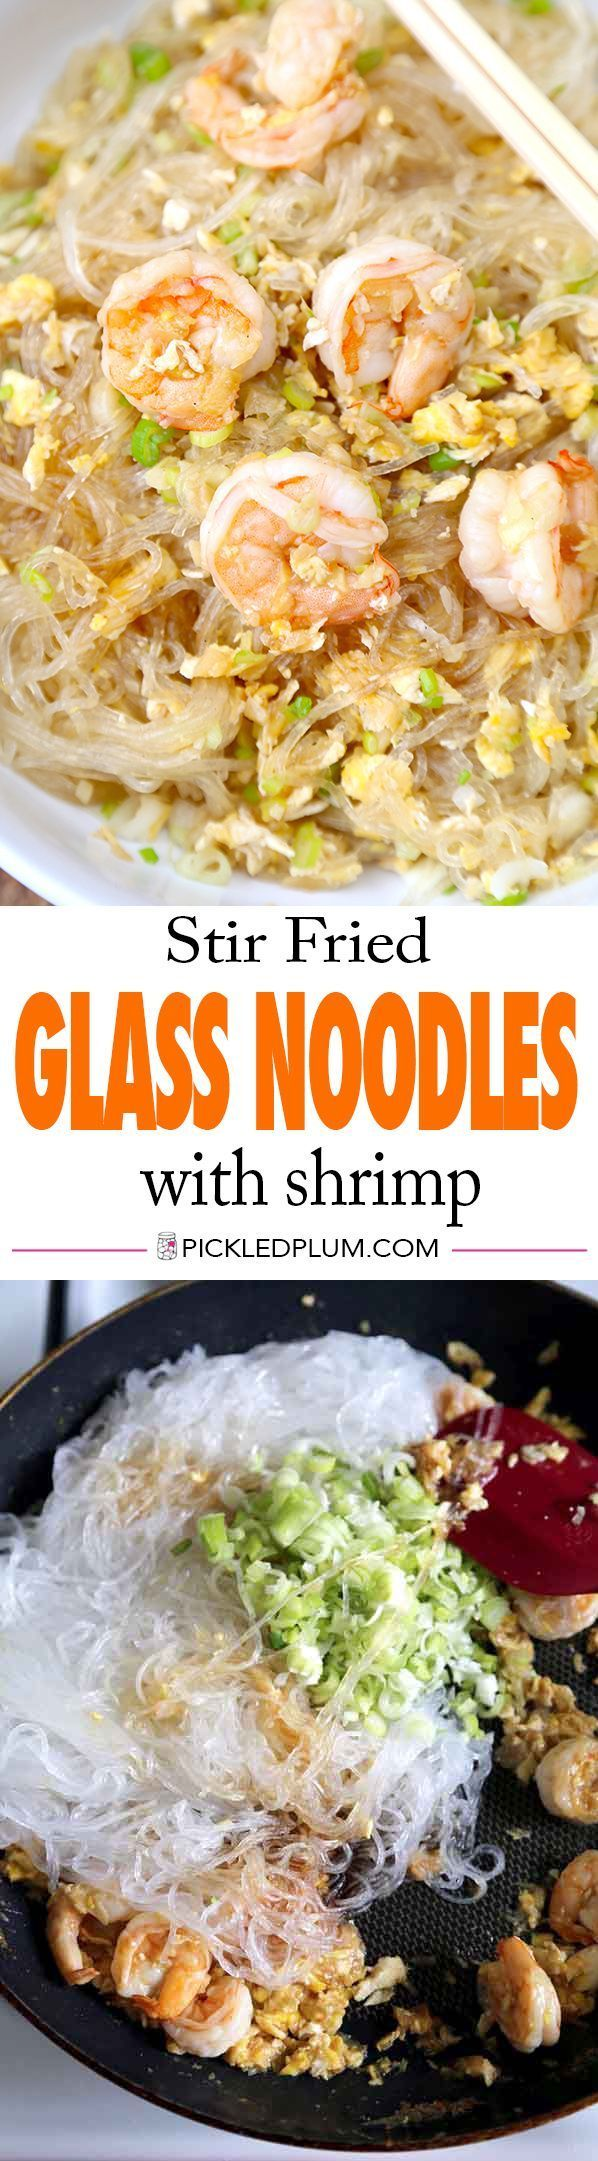 32 best stir fry dinner recipes images on pinterest kitchens stir fried glass noodles with shrimp stir fry recipesentree recipesquick dinner forumfinder Image collections